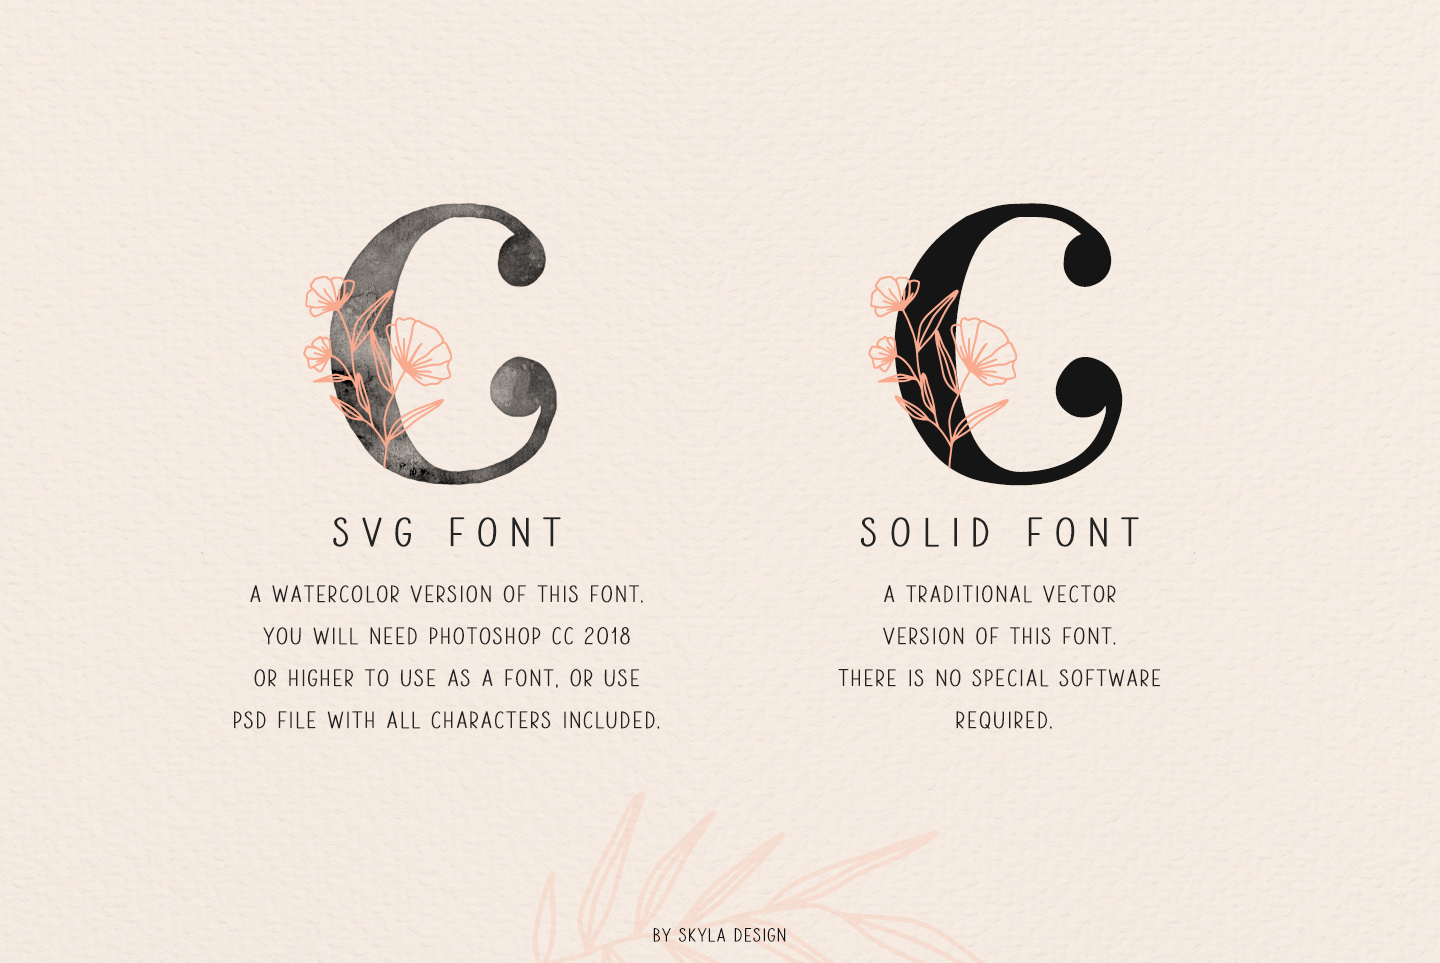 Ciera watercolor svg font family & floral logos clipart example image 10